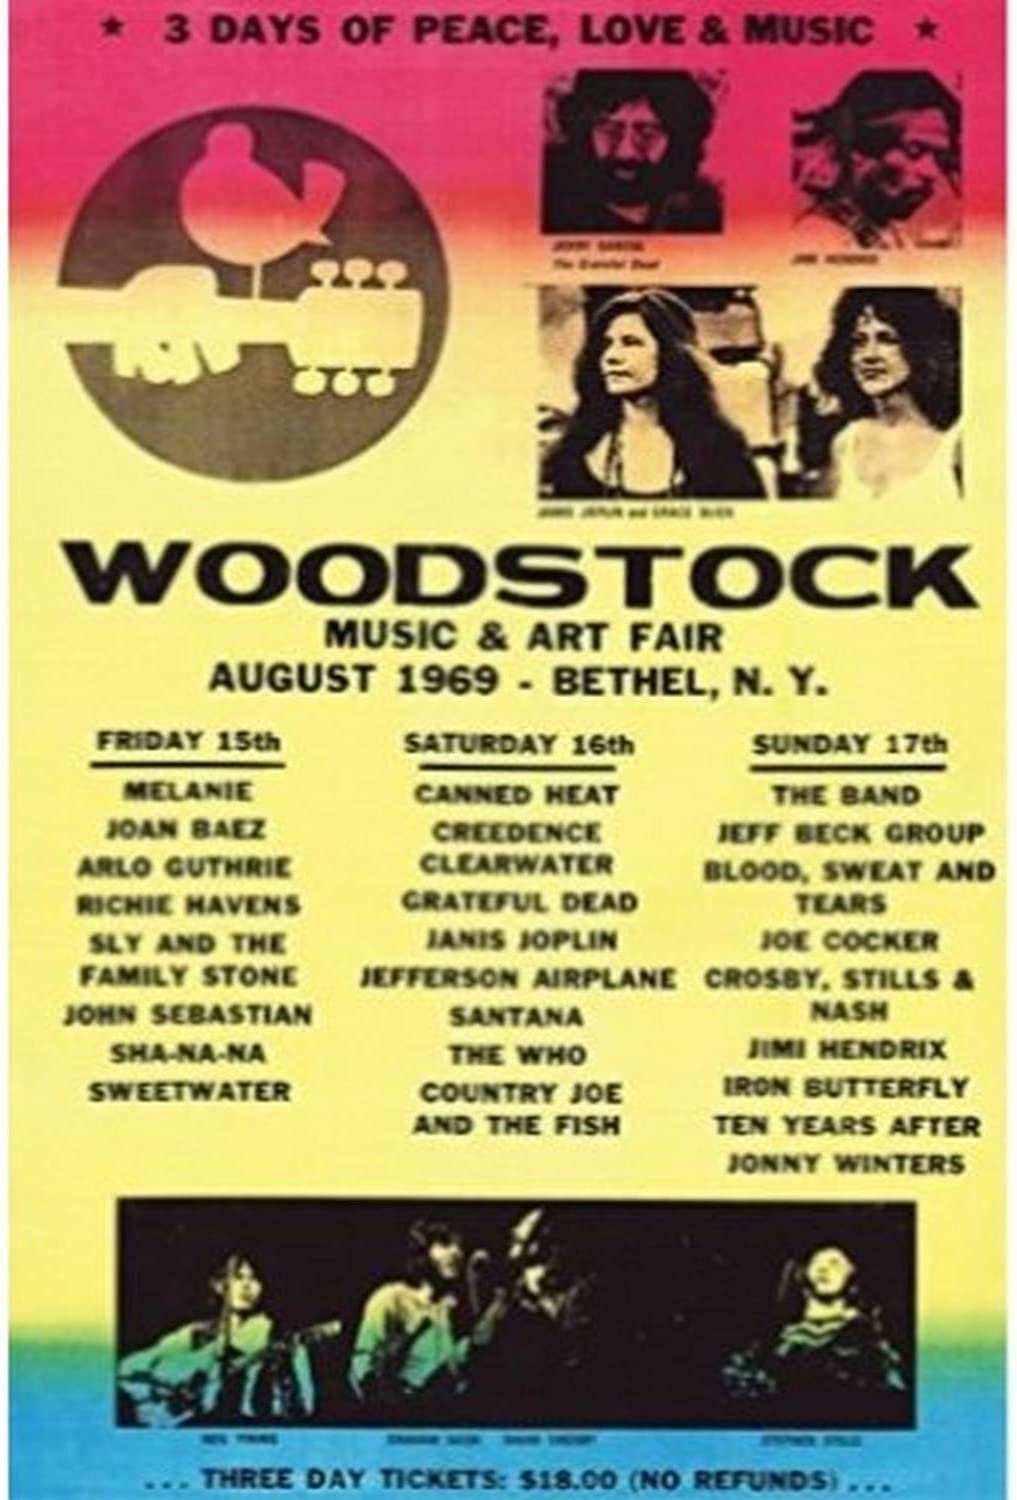 Buyartforless Woodstock Line-Up 1969 36x24 Art Print Poster Wall Decor - 3 Days of Peace Love and Music Concert Poster